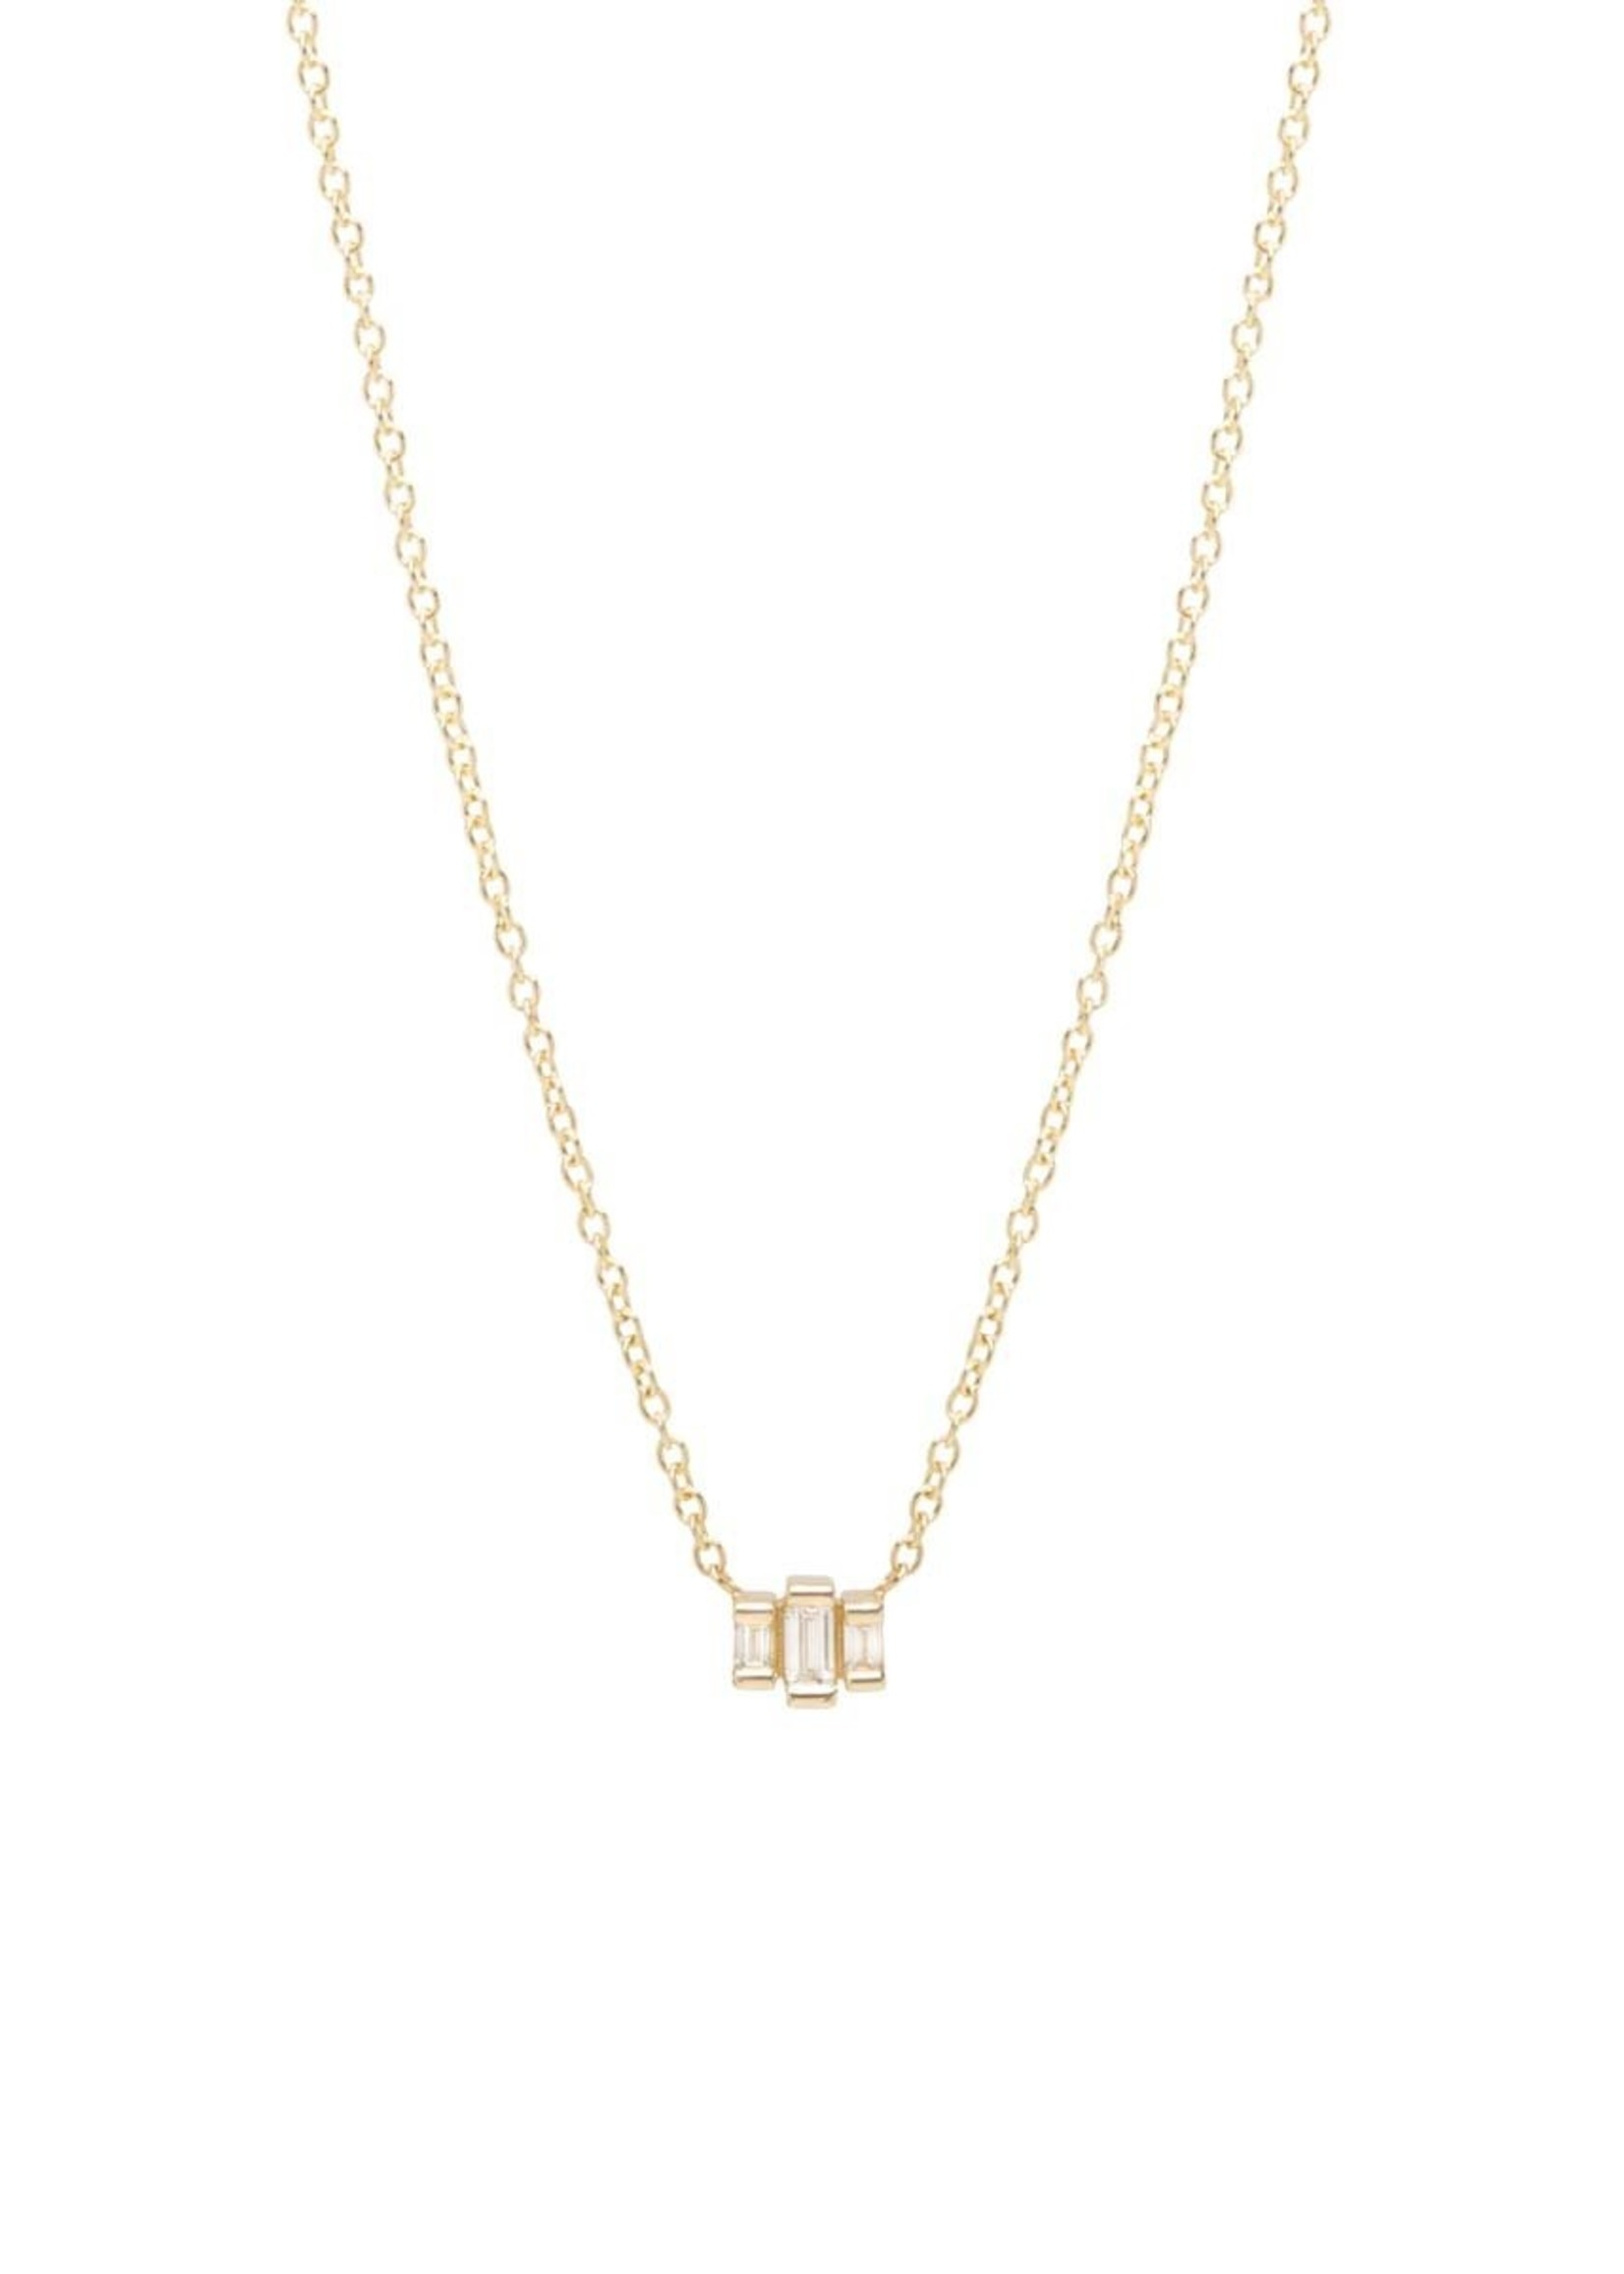 ZOE CHICCO 14K GOLD SMALL 3 STEP BAGUETTE NECKLACE